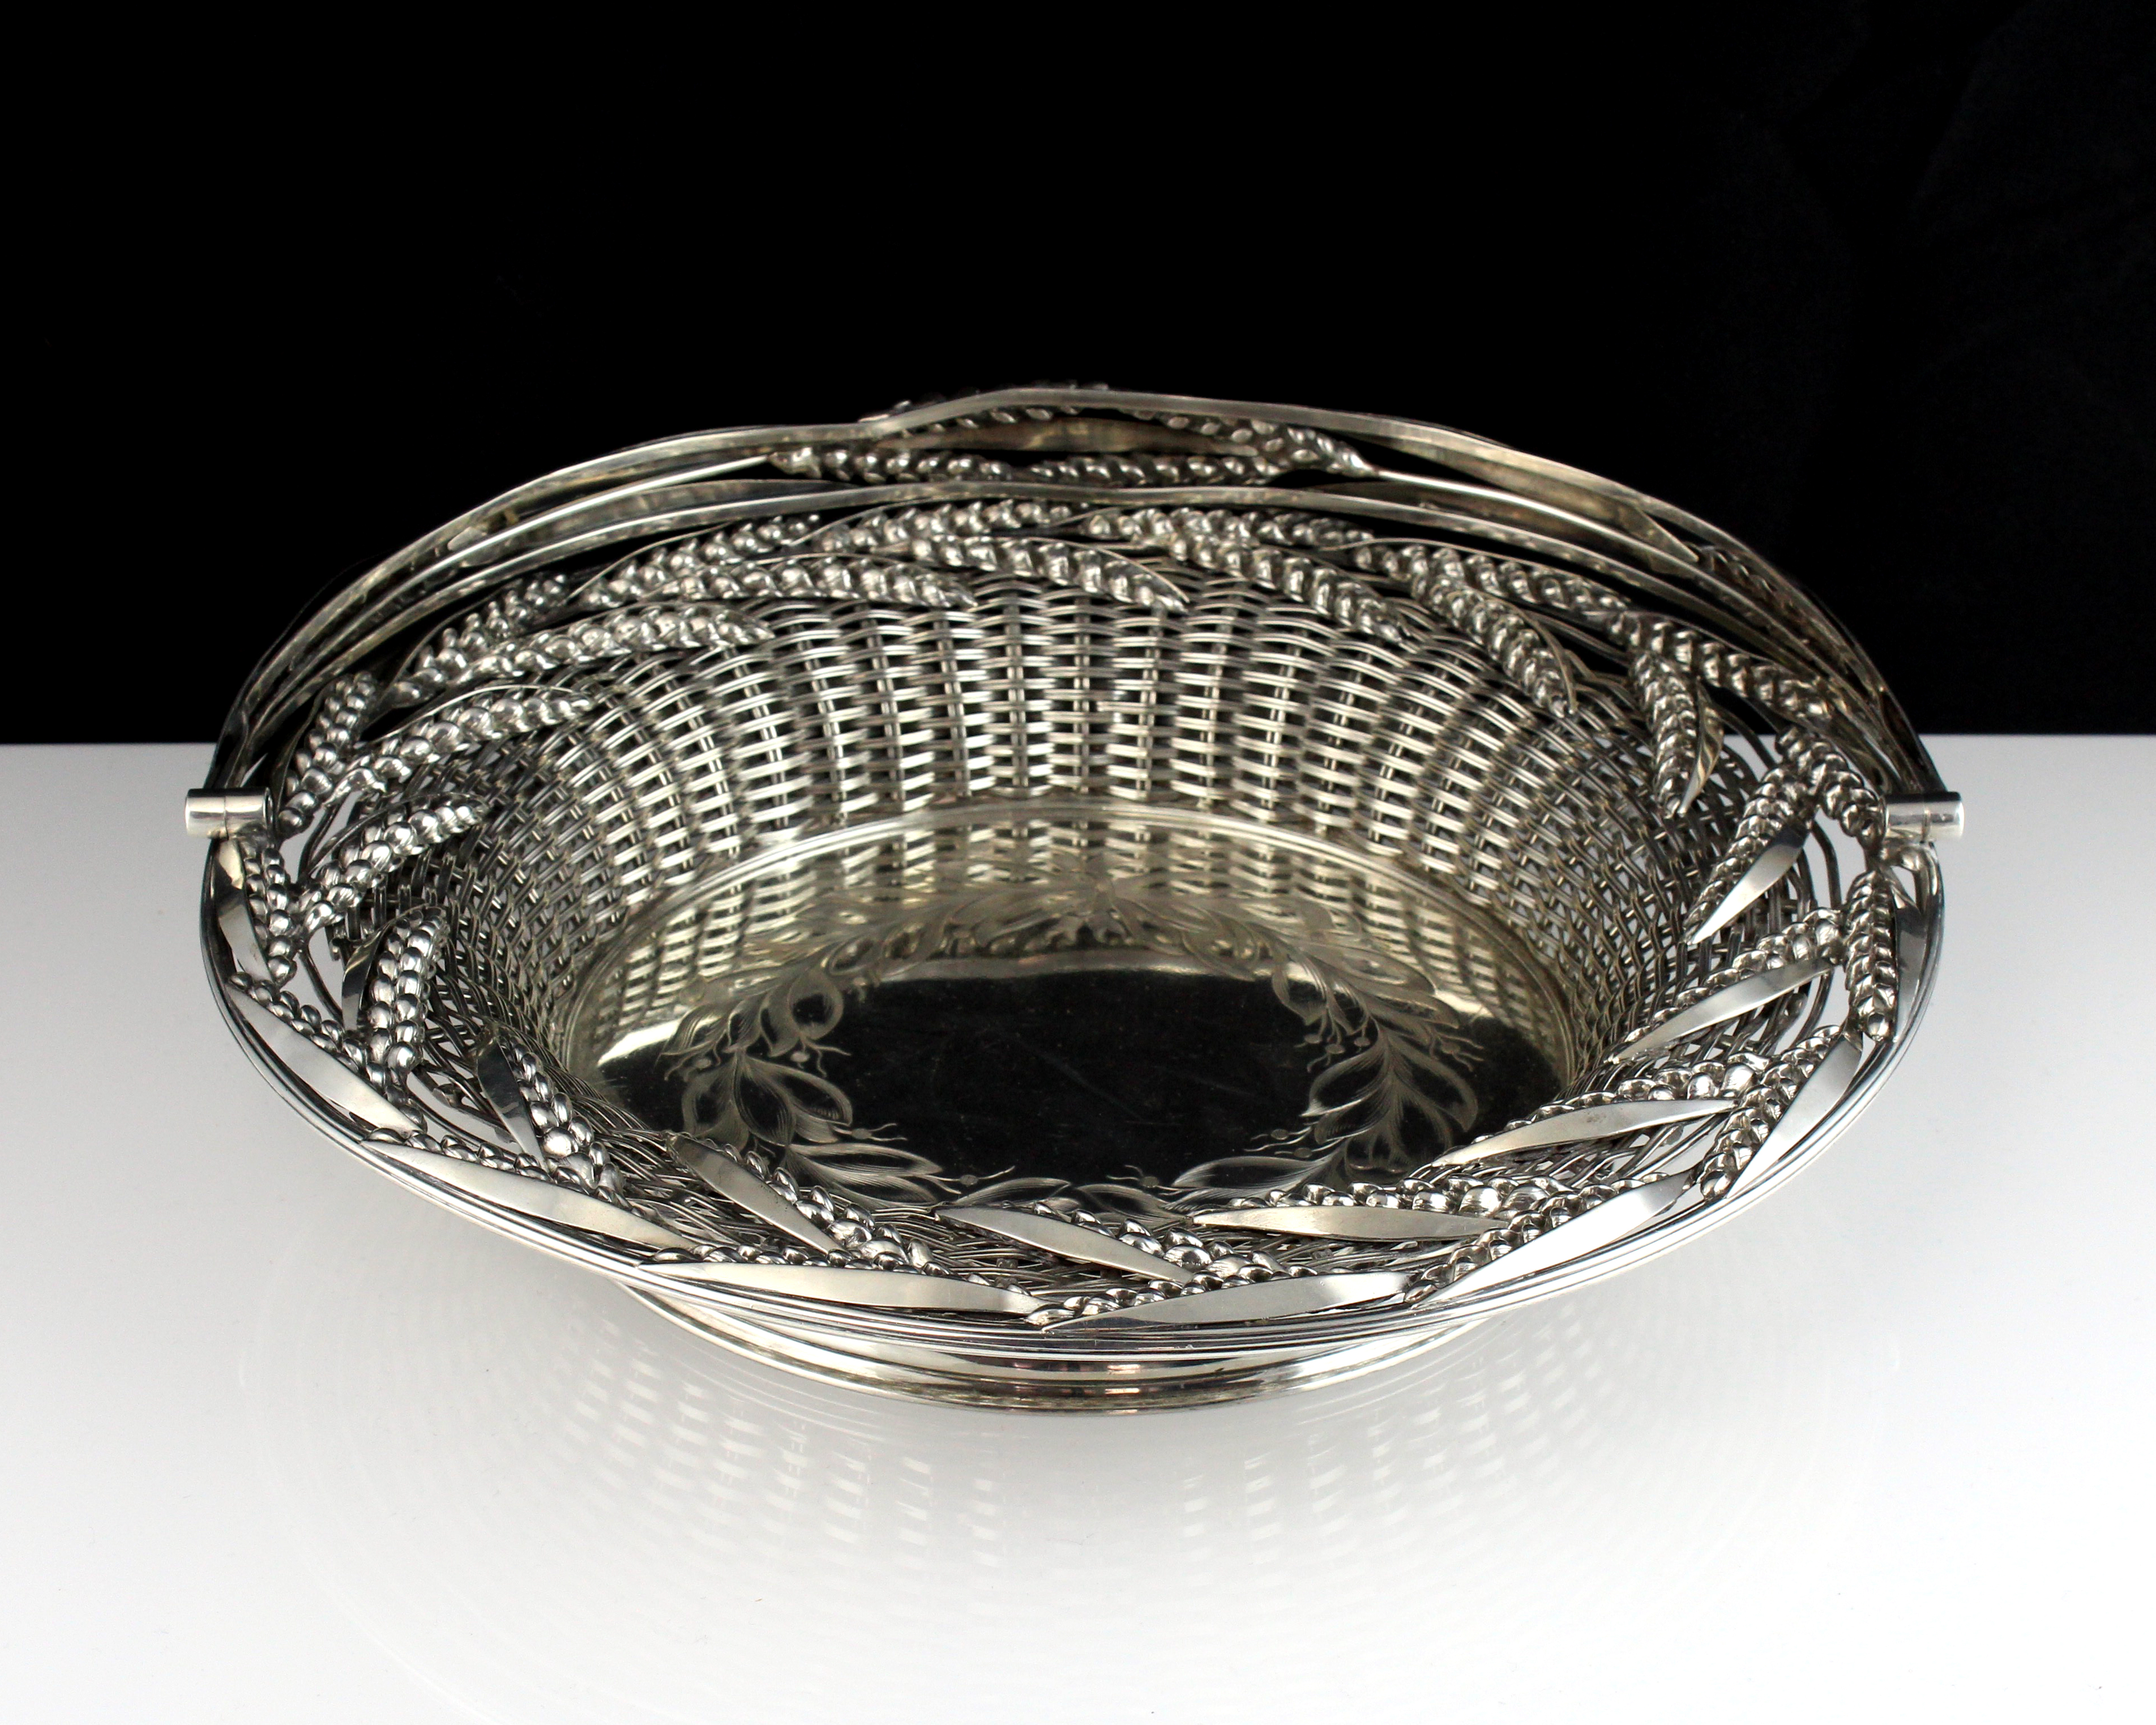 An antique Victorian Sterling Silver swing handled bread / cake basket by Thomas Bradbury & Son,